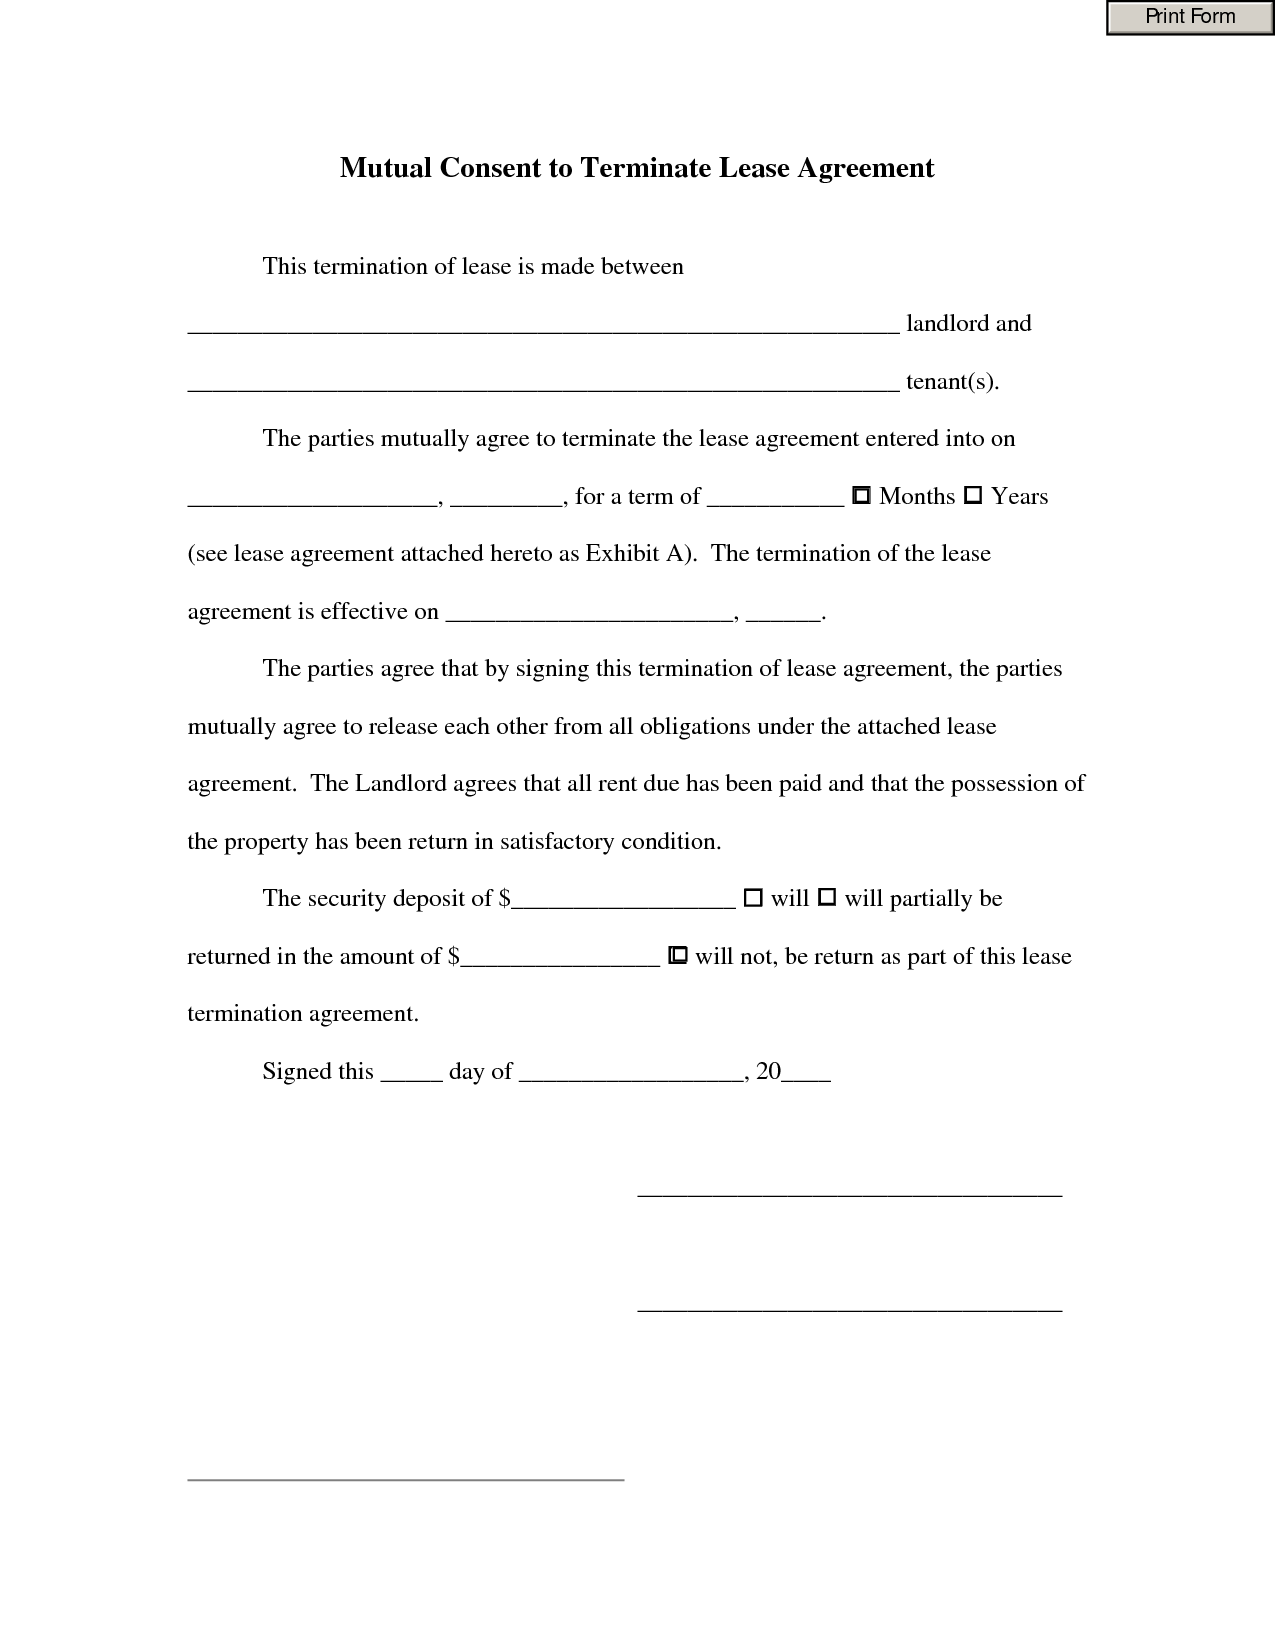 Mutual Consent to Terminate Lease Agreement by fdh56iuoui – Lease Termination Letter Format